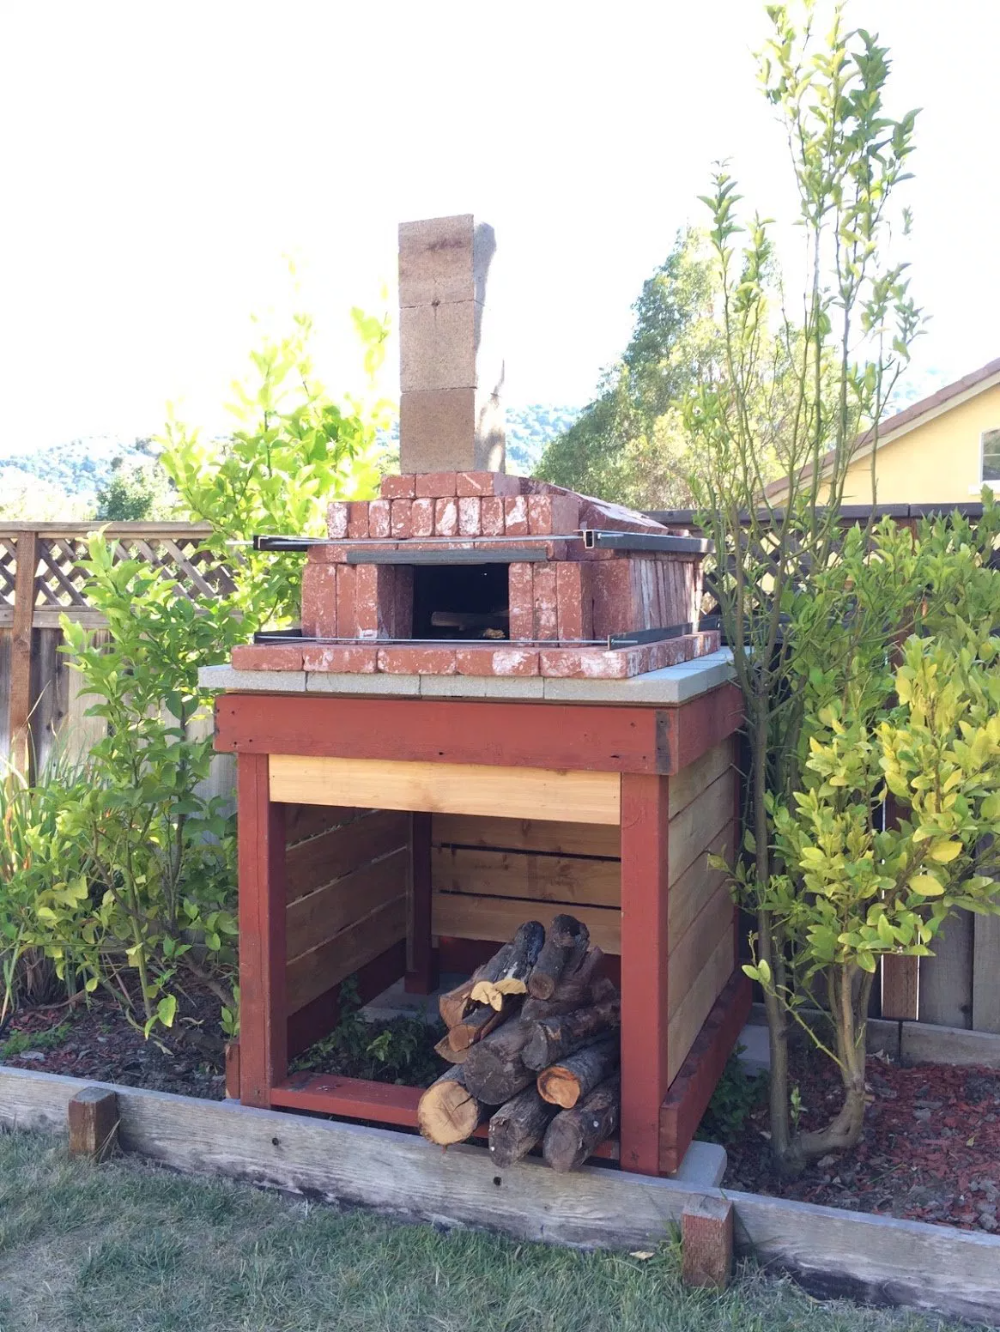 Build in One Day: Arched Brick Pizza Oven | Make: in 2020 ...